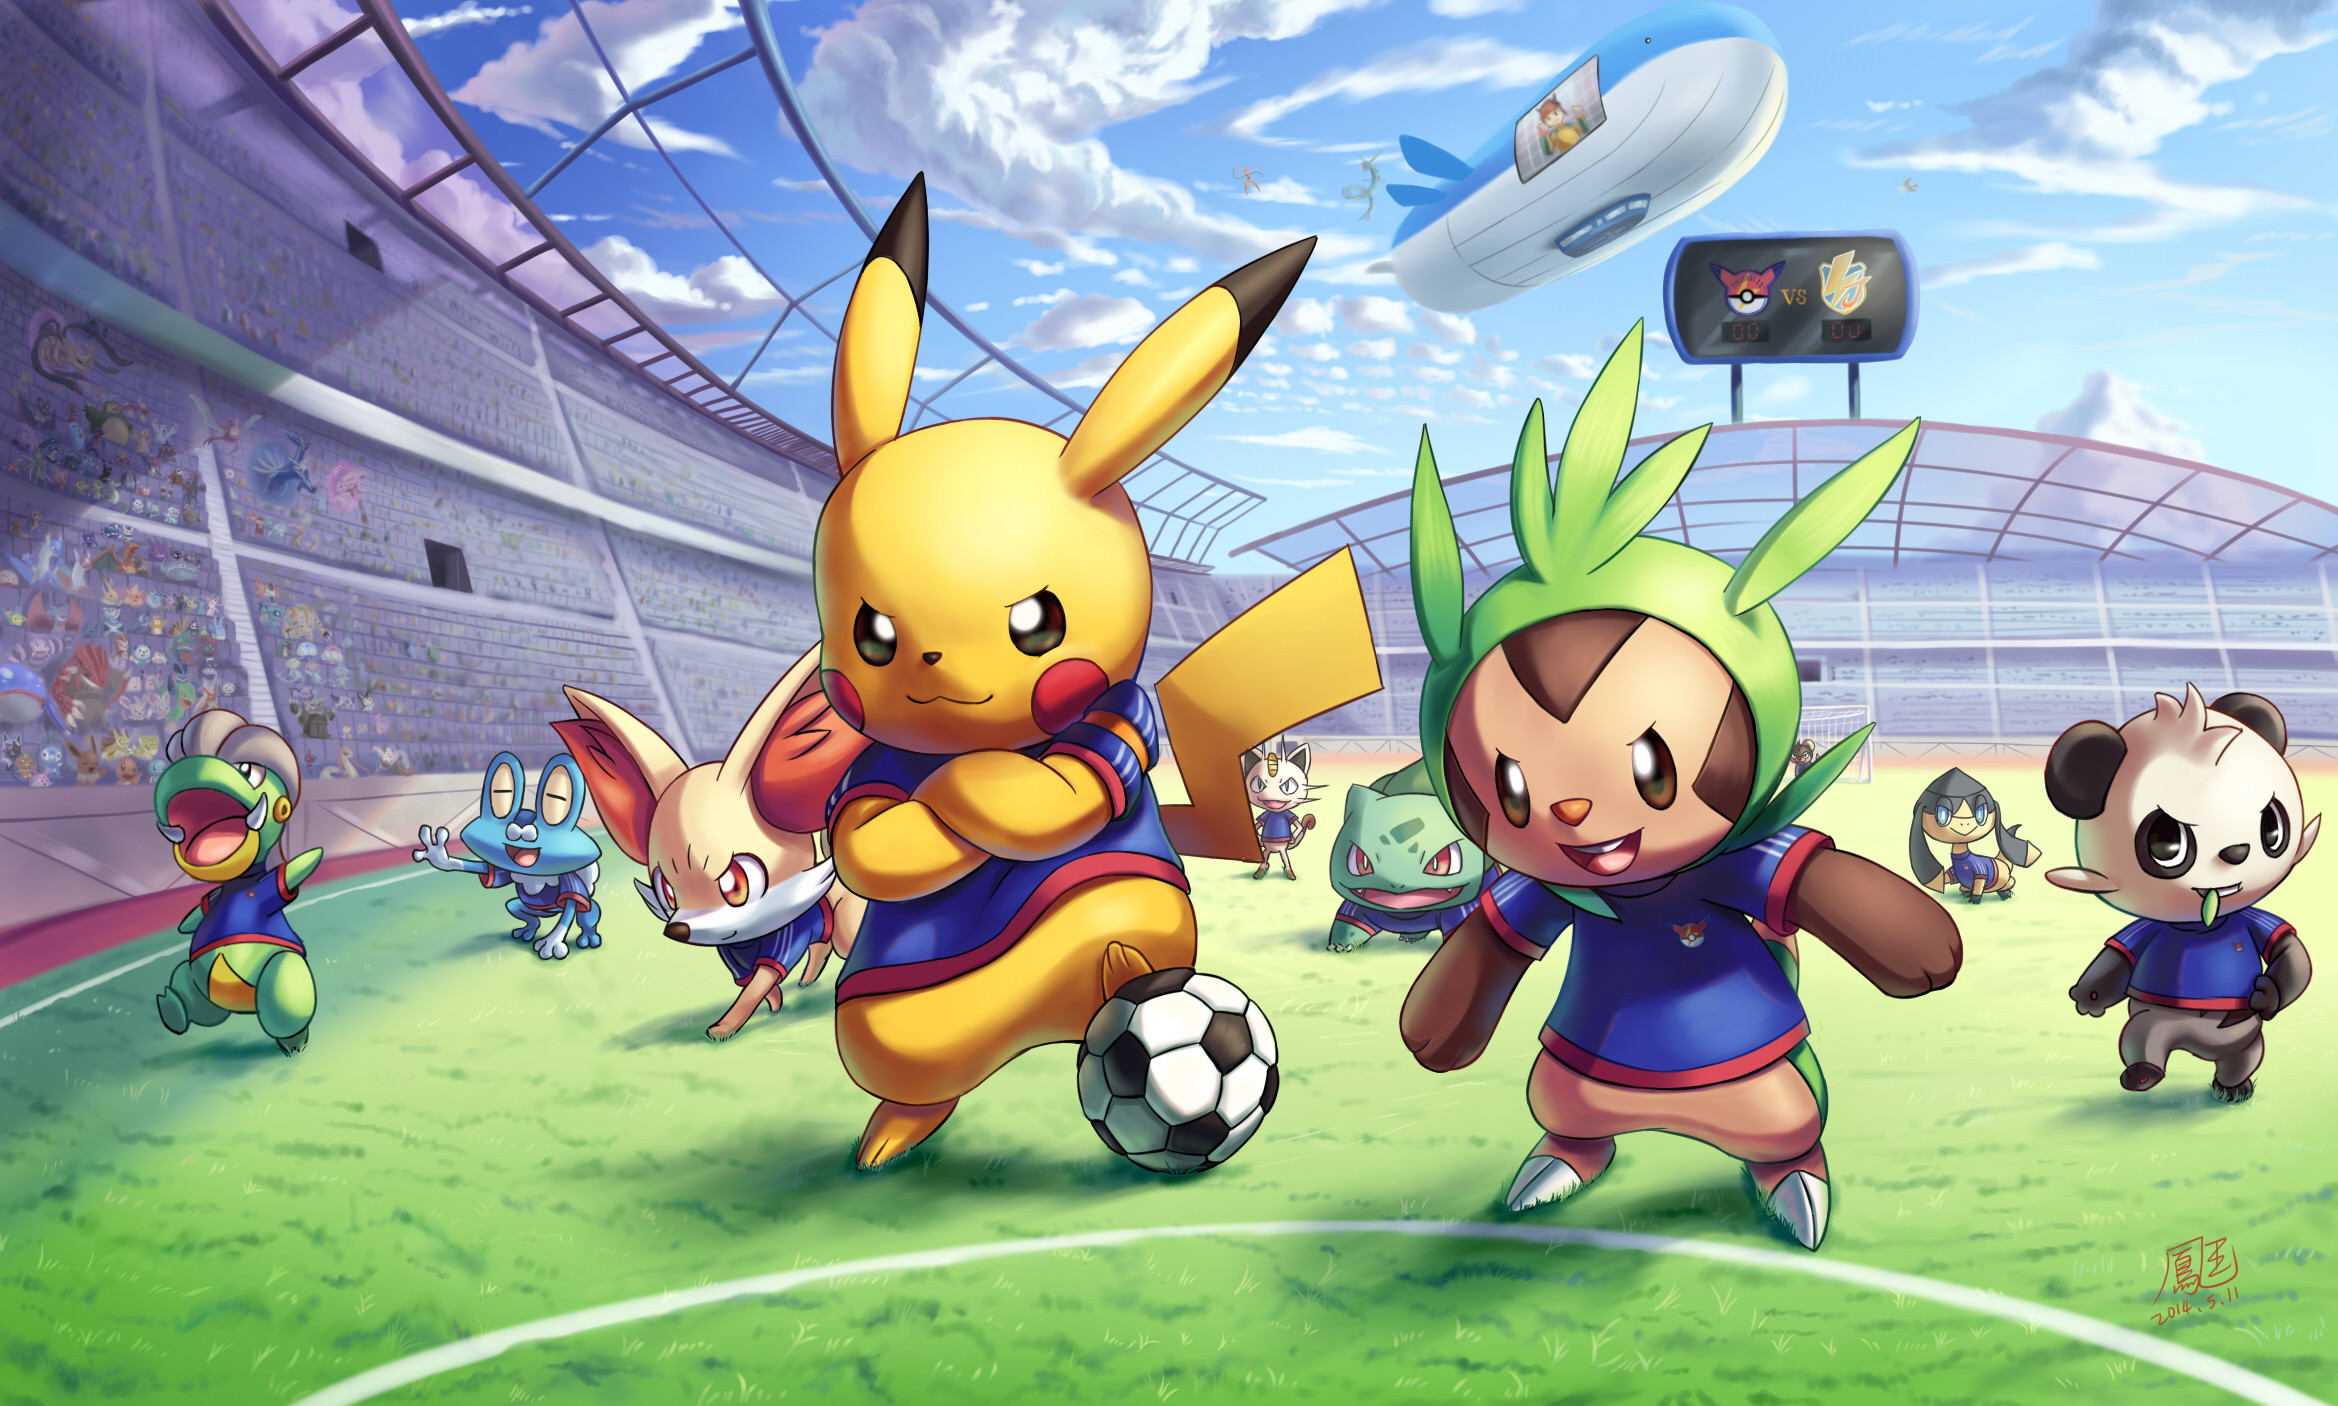 Pokemon GO Pikachu Games Cartoon Football Computer Wallpaper Ball